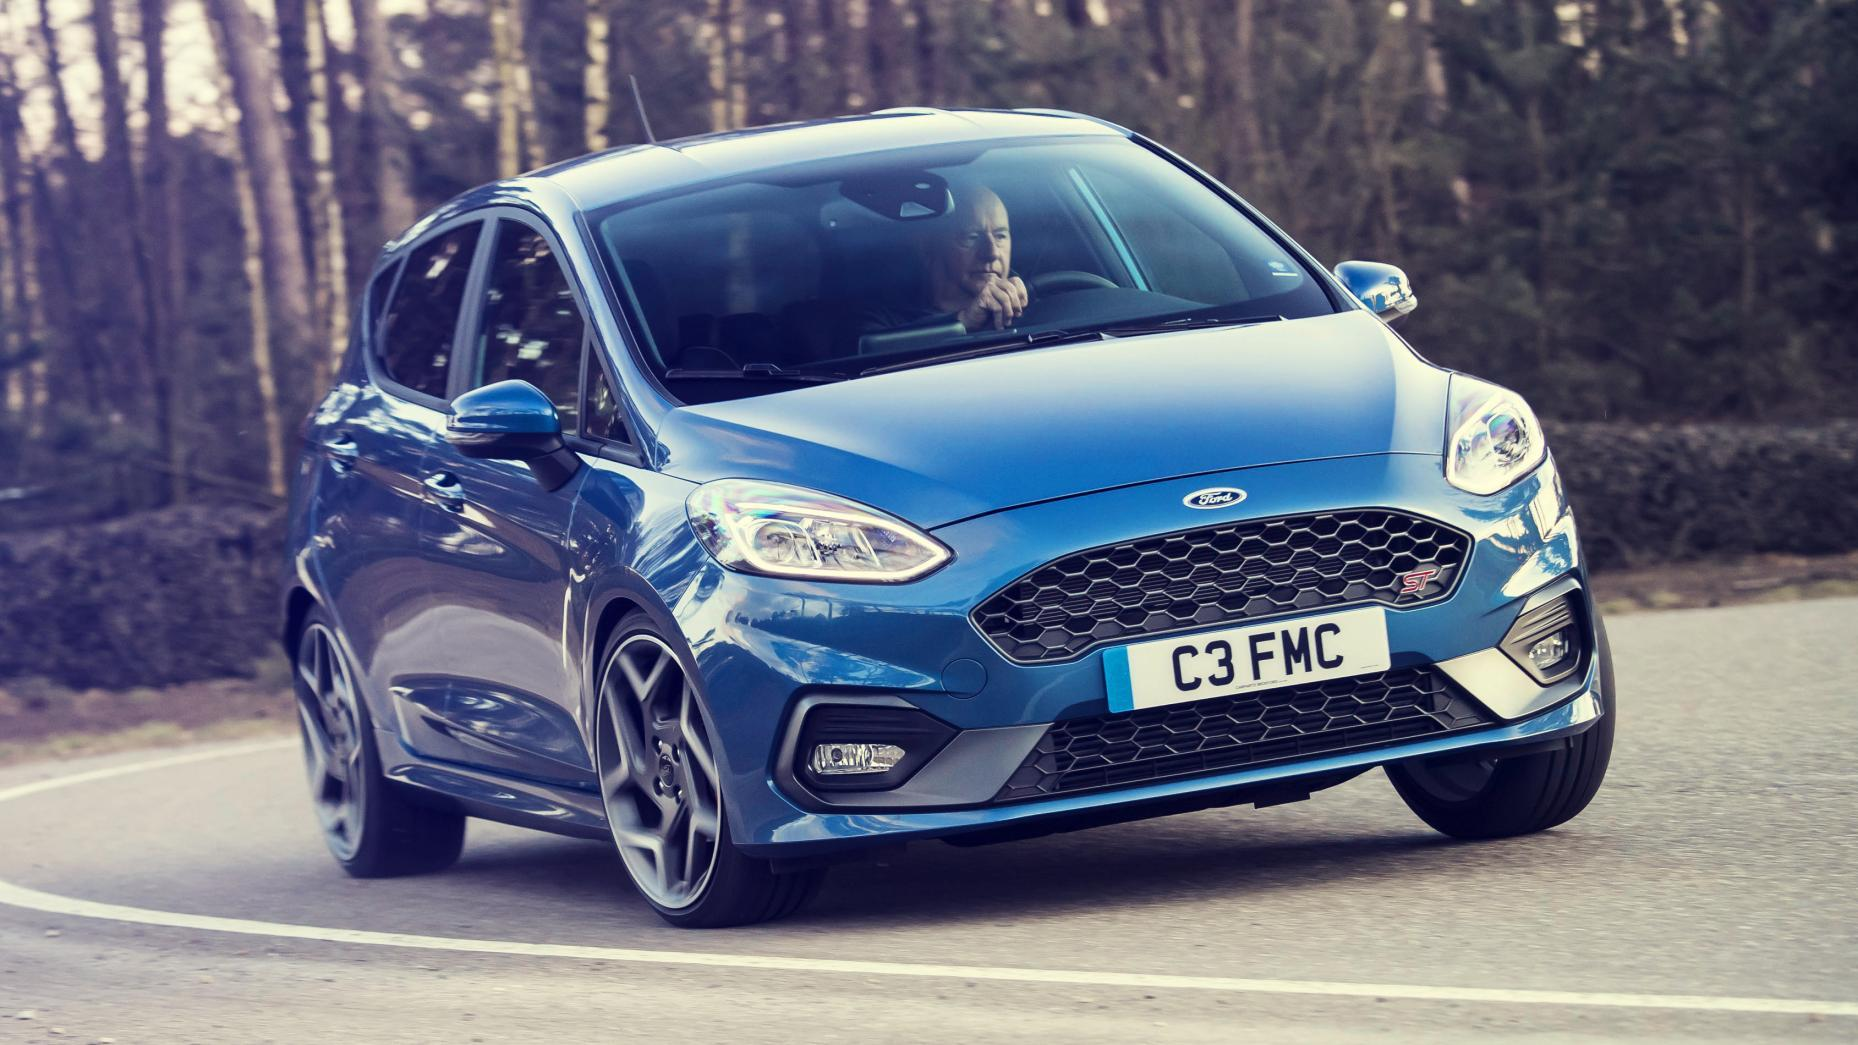 ford fiesta st 2018 prijs is bekend topgear nederland. Black Bedroom Furniture Sets. Home Design Ideas